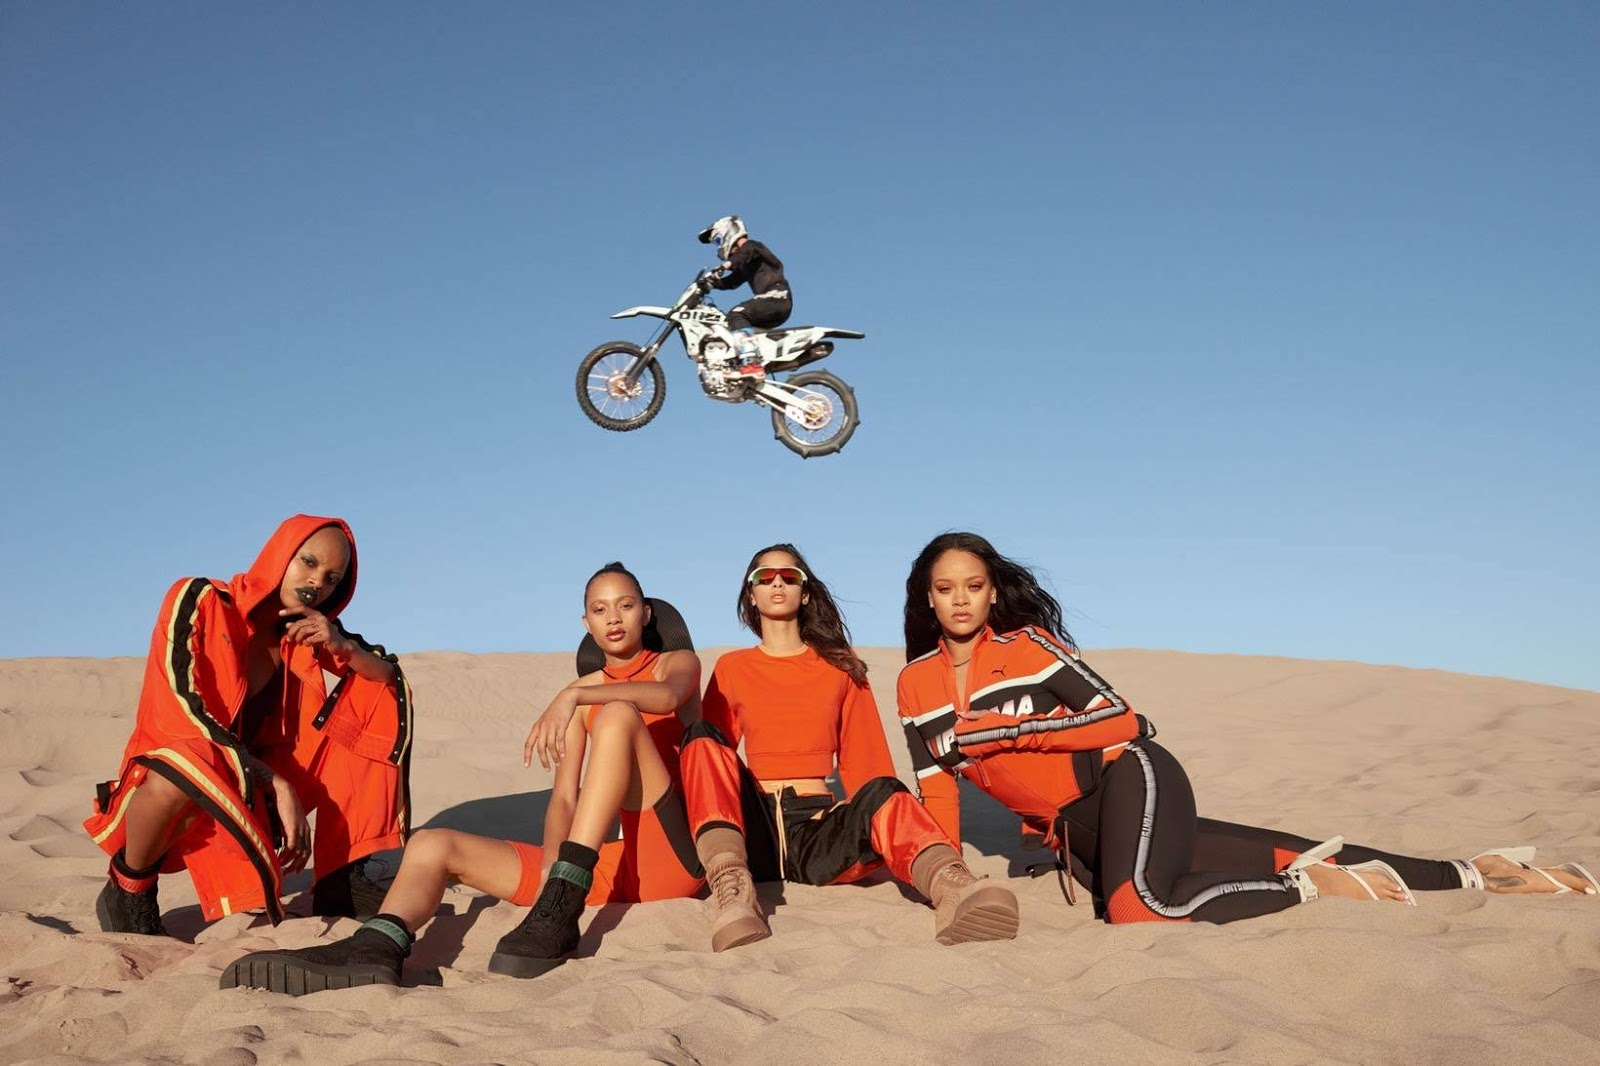 Rihanna poses for the Fenty x Puma Spring/Summer 2018 Campaign